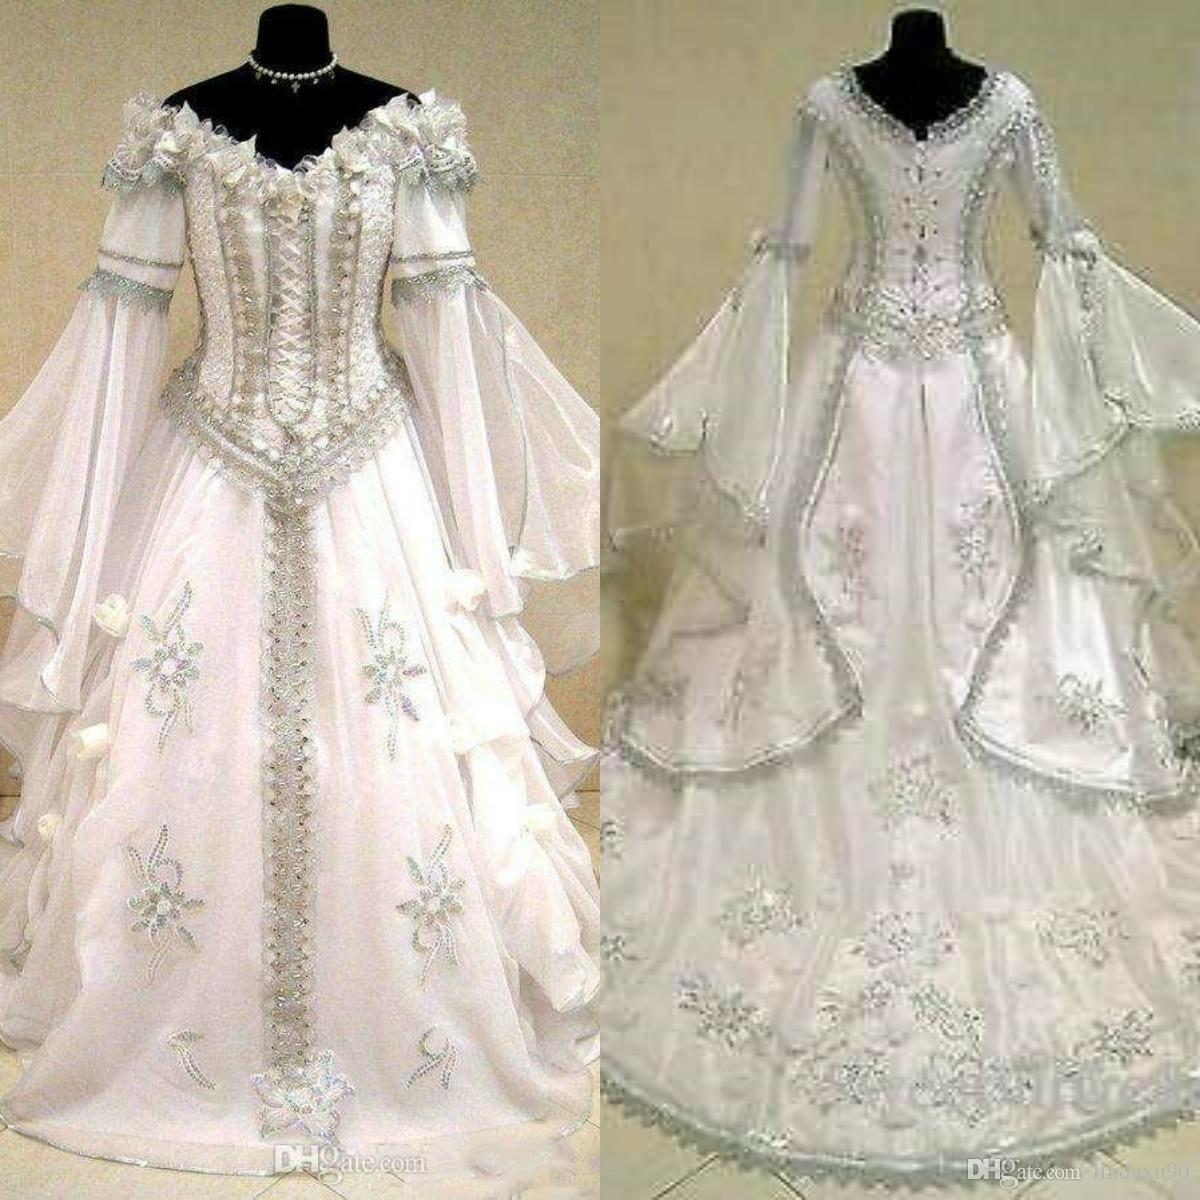 Medieval Wedding Dresses Witch Celtic Tudor Renaissance Costume Victorian Gothic Off The Shoulder Long Sleeve Wedding Dress Bridal Gowns